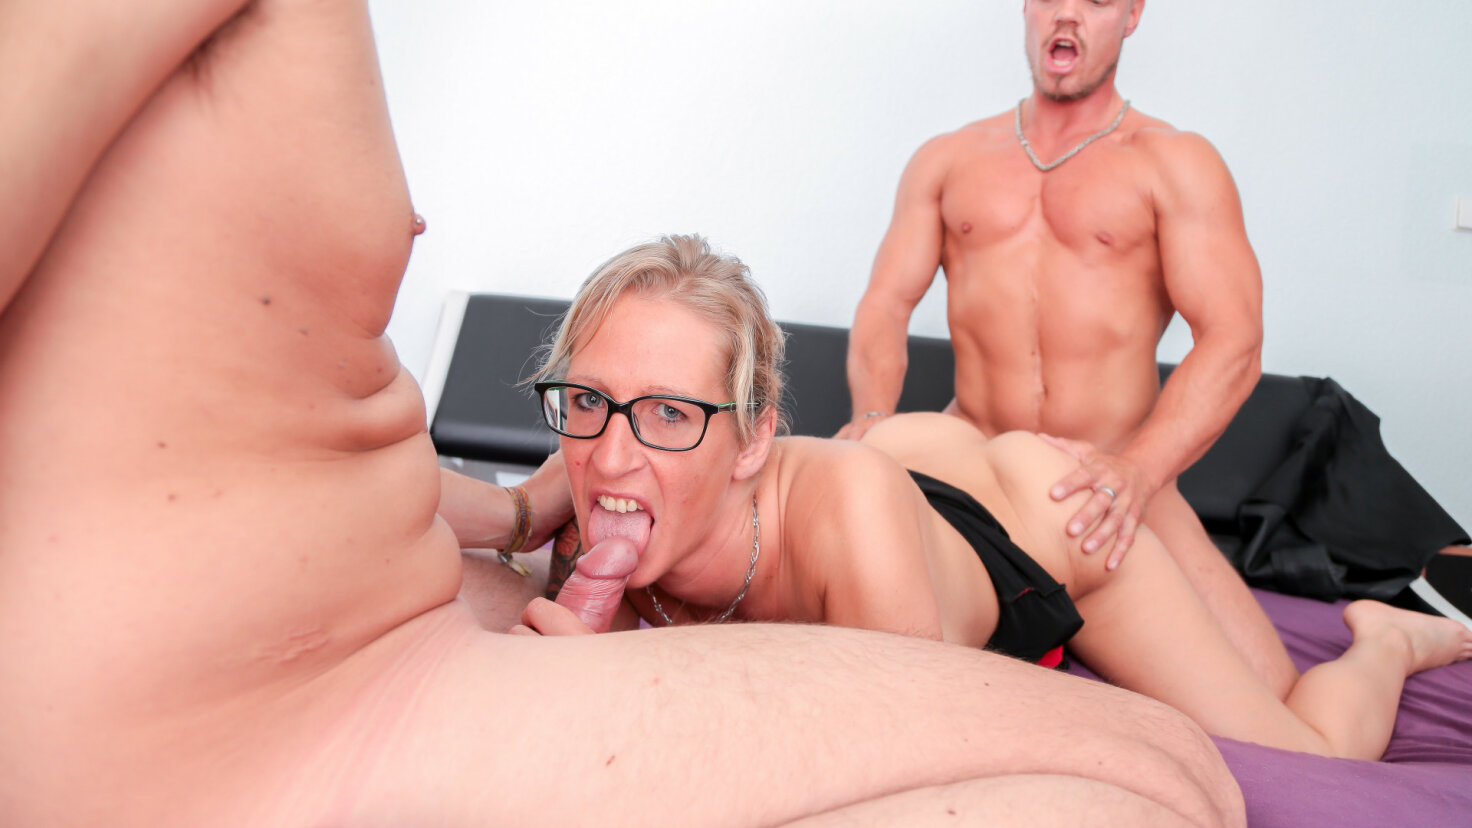 Hardcore MMF threesome with mature German swinger blondie